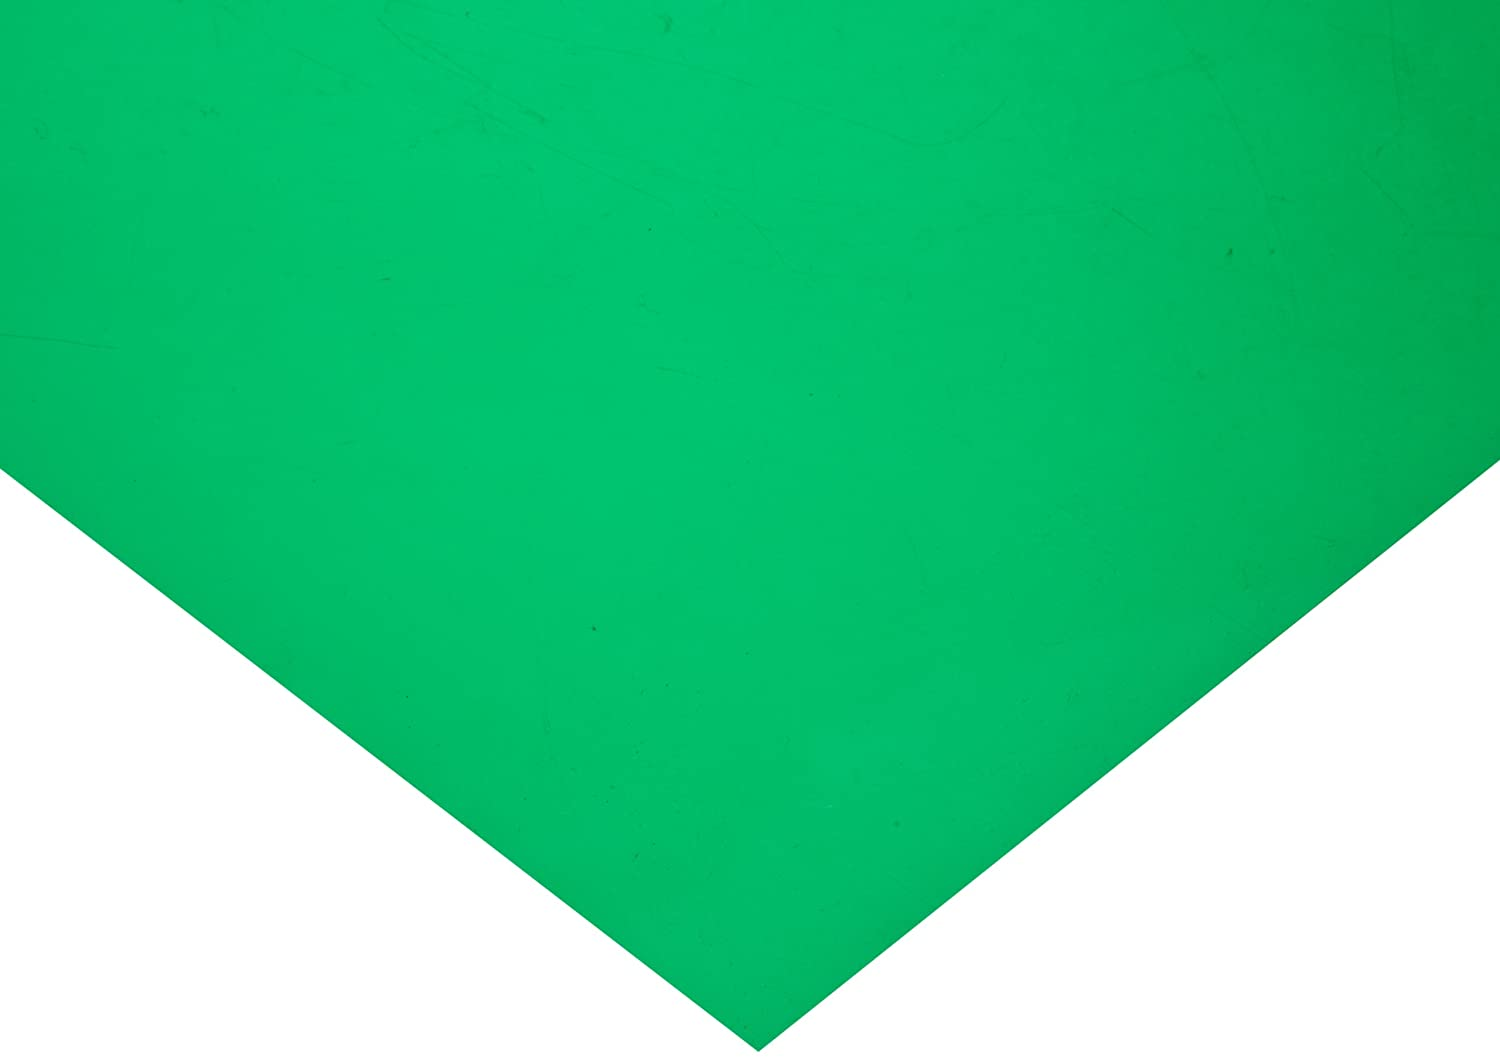 20 Length 10 Width Green Polyester Shim Stock Flat Sheet 0.003 Thickness Pack of 1